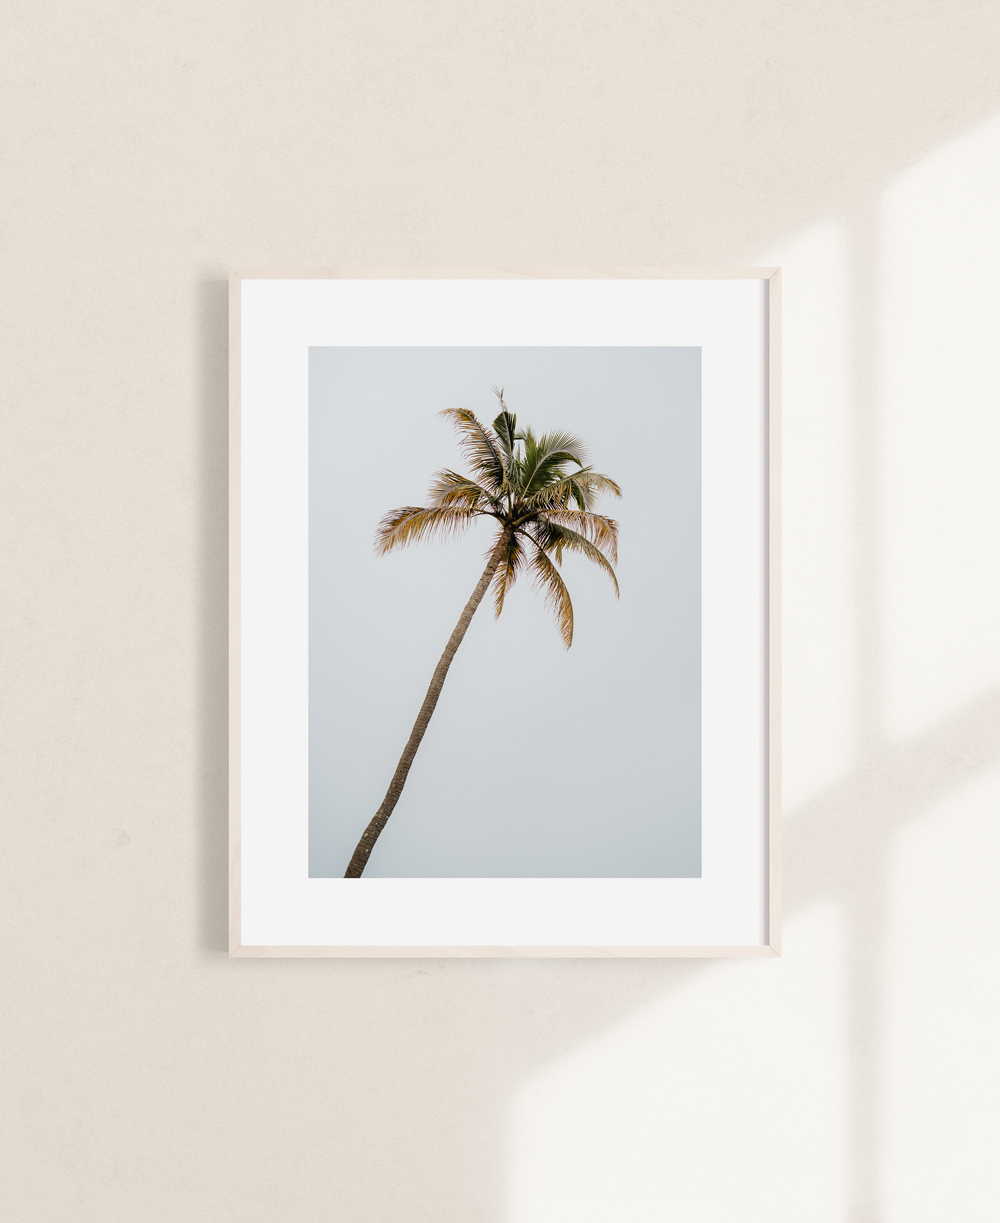 nicischwab-prints-003-palmtree-india